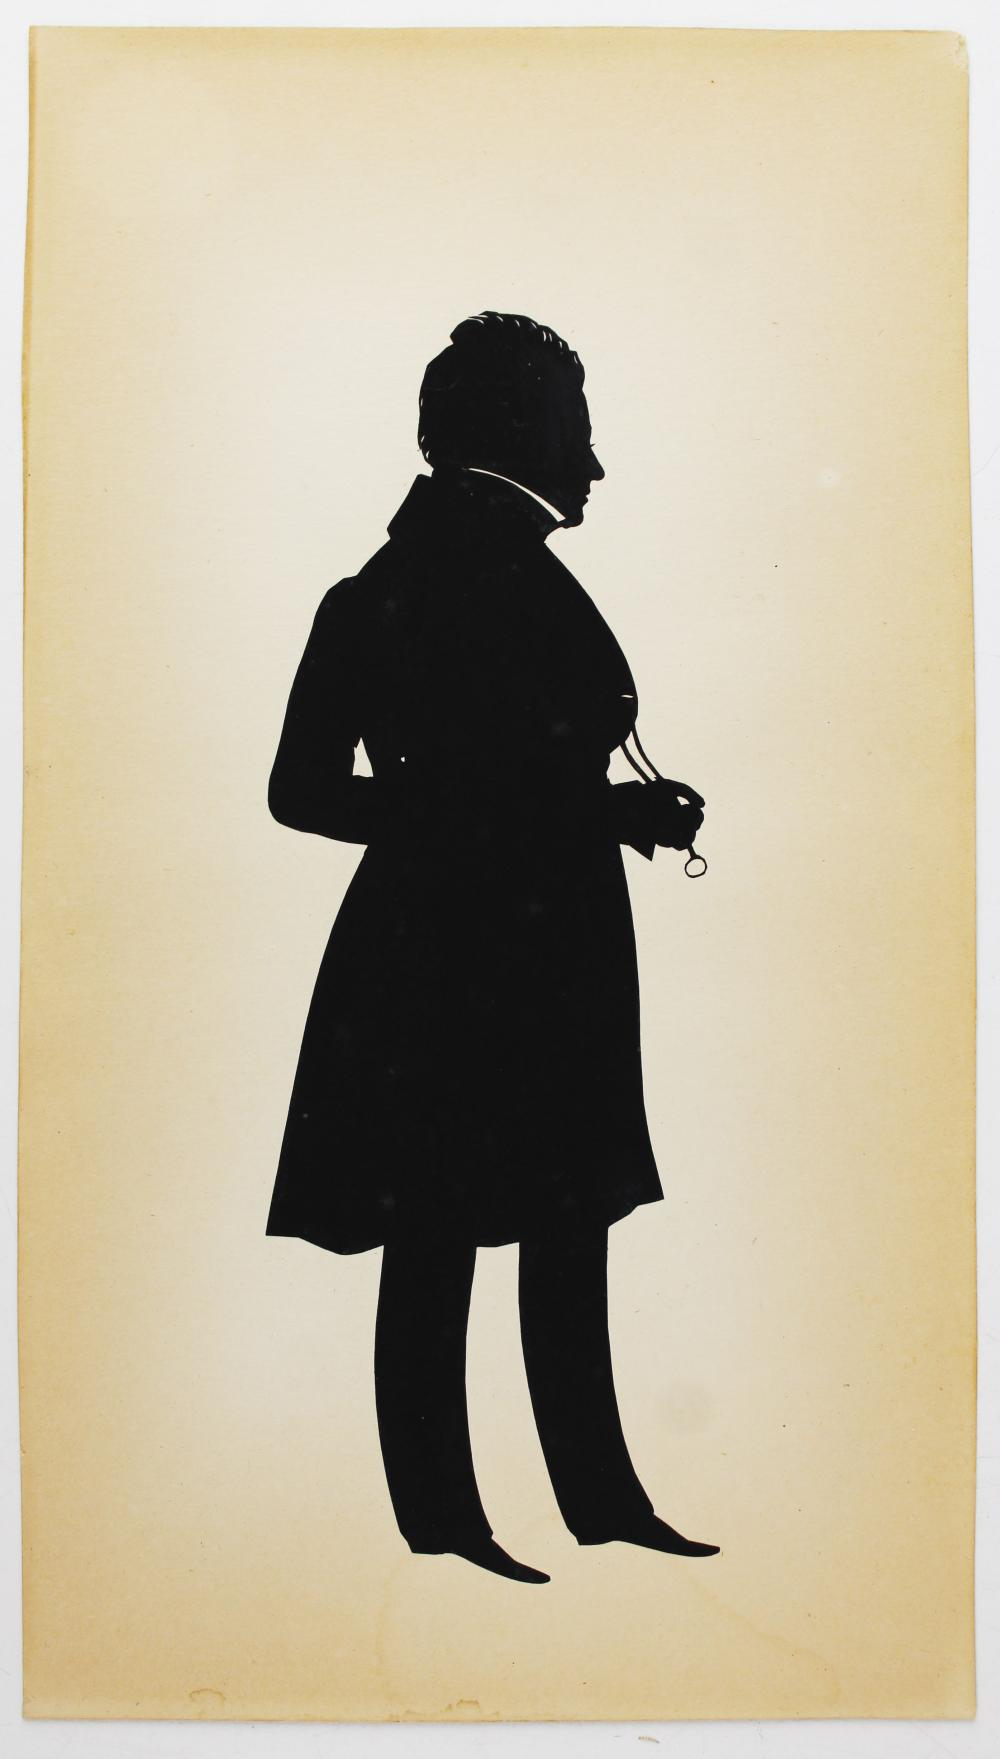 1836 Edouart silhouette of Mr Chillpots of Gloster